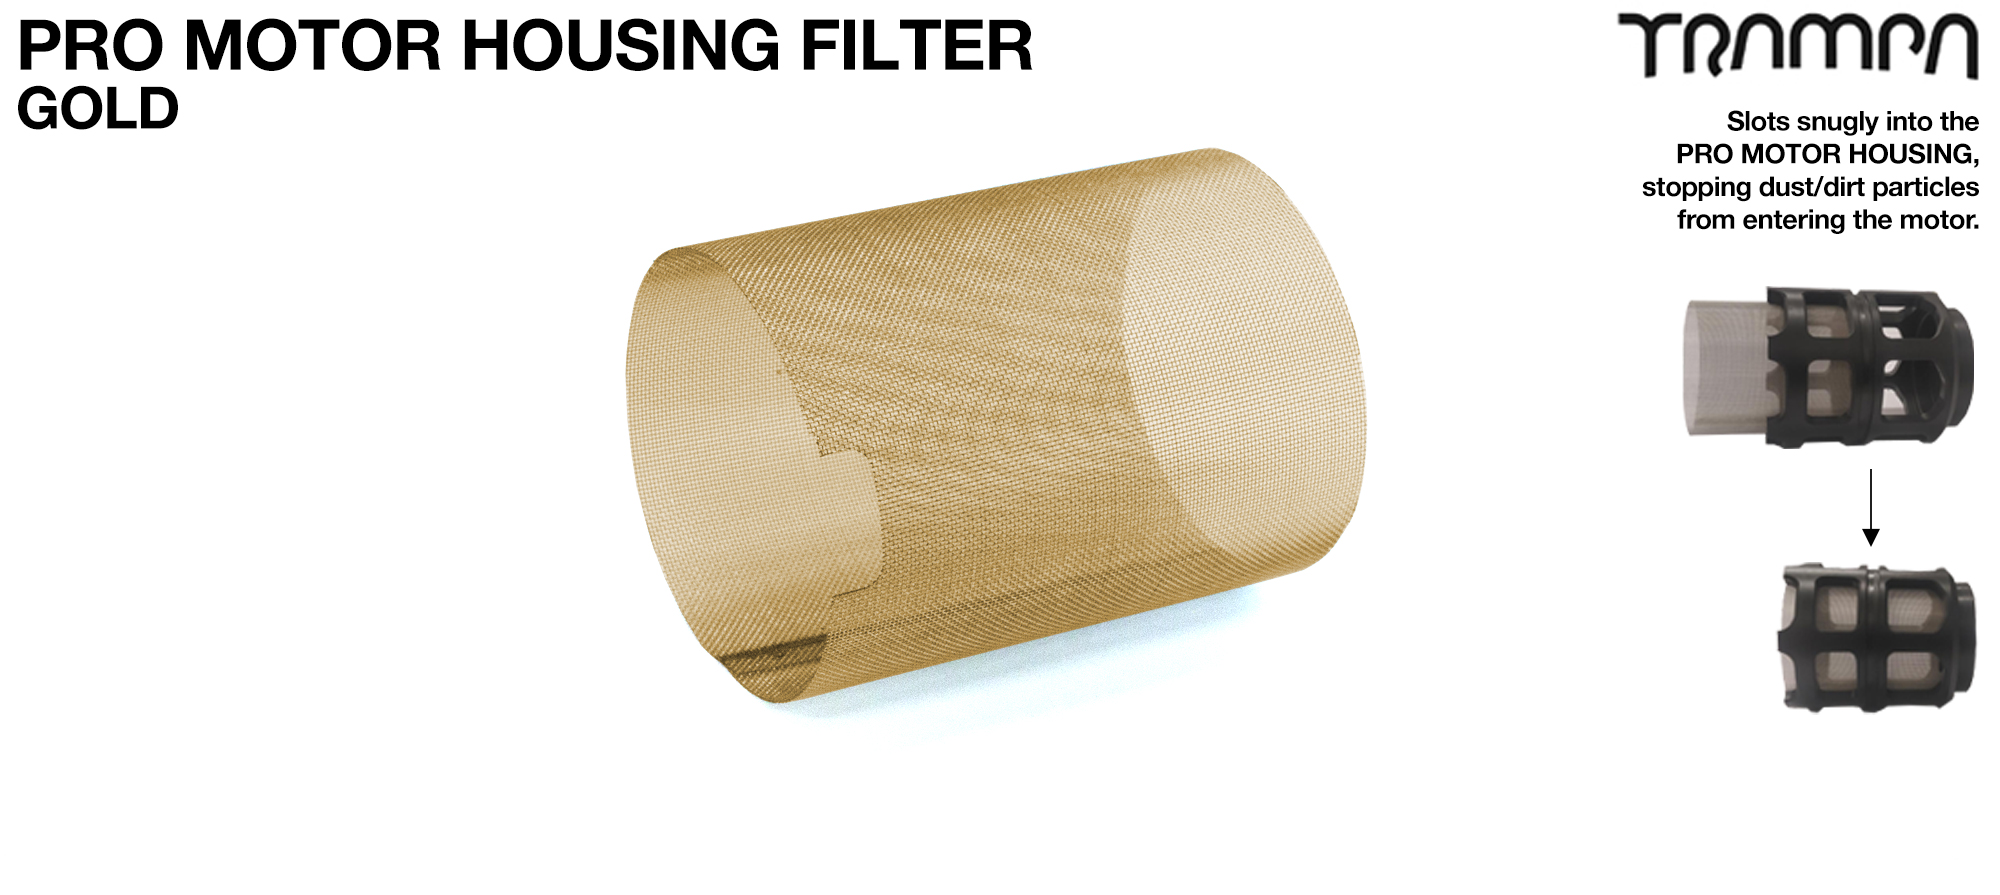 MkII Motor Protection Cover MESH FILTER - GOLD